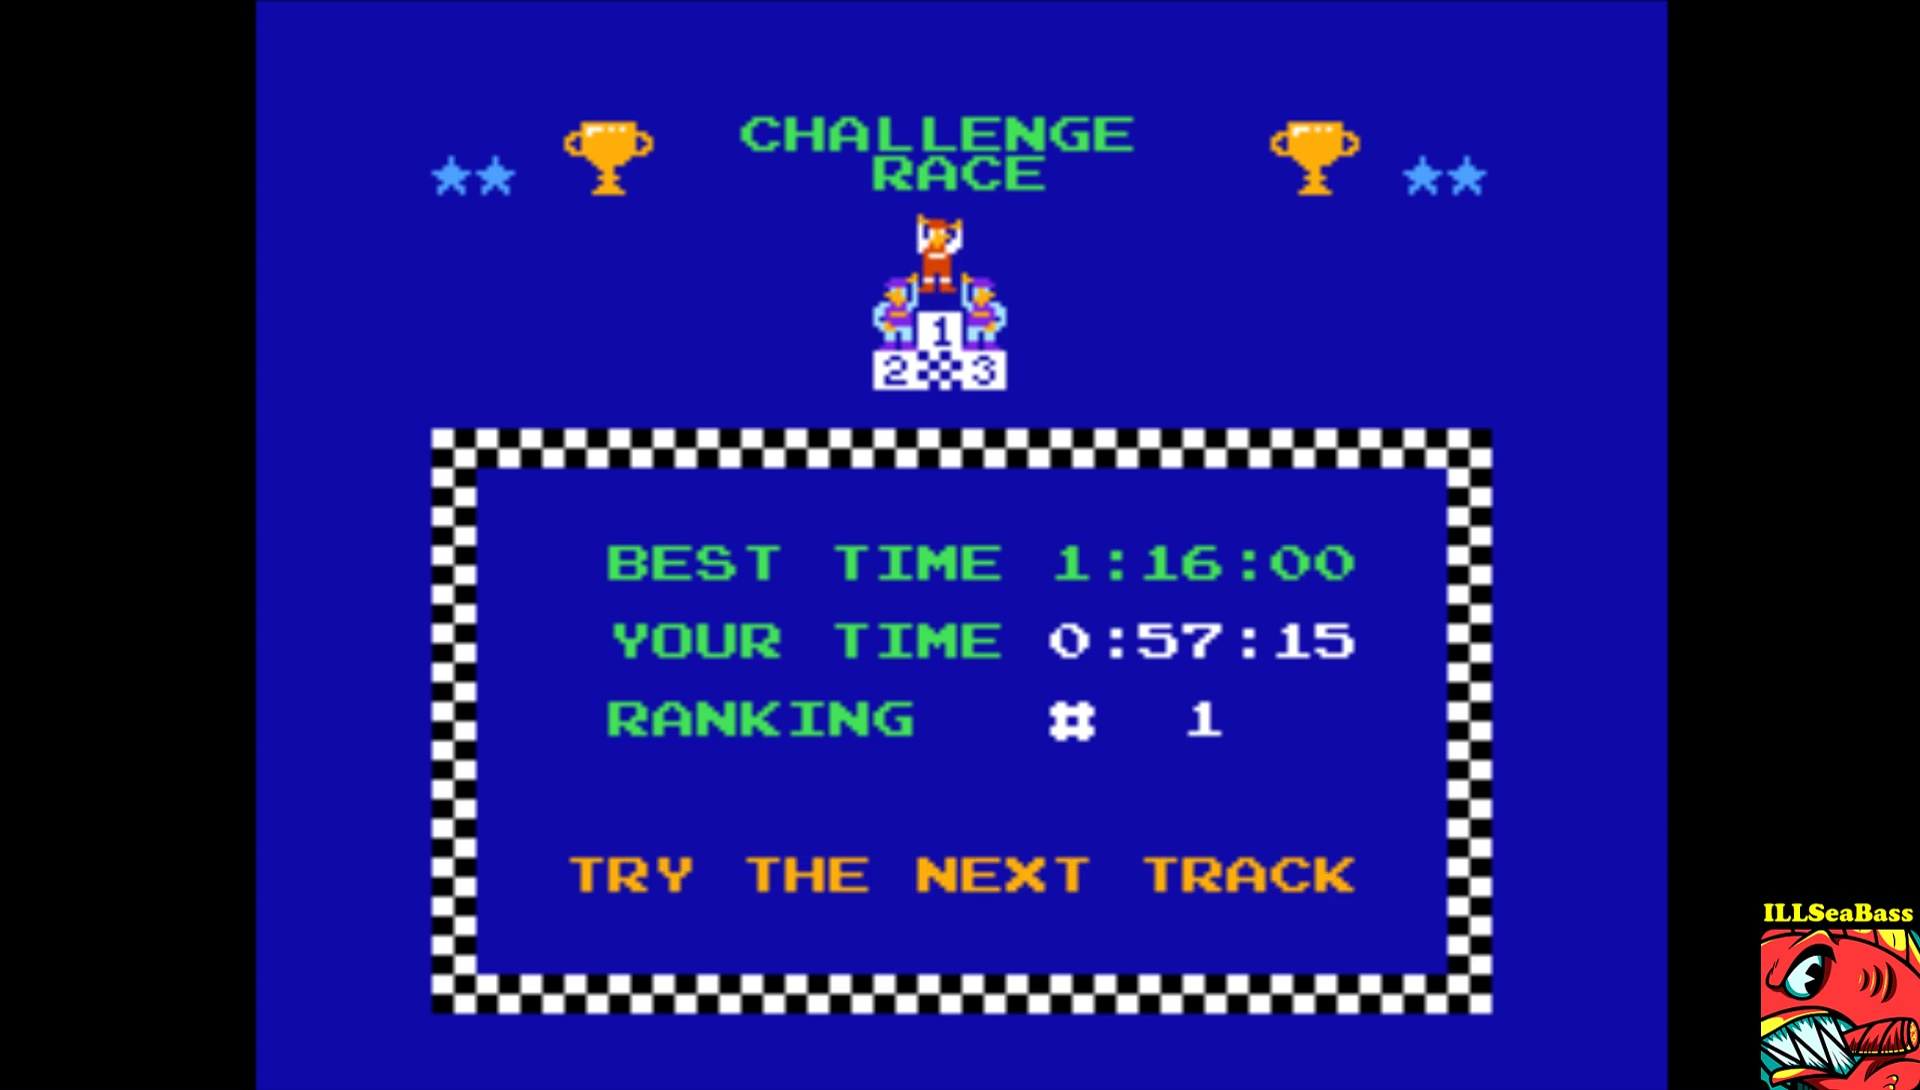 Excitebike: Track 1 time of 0:00:57.15